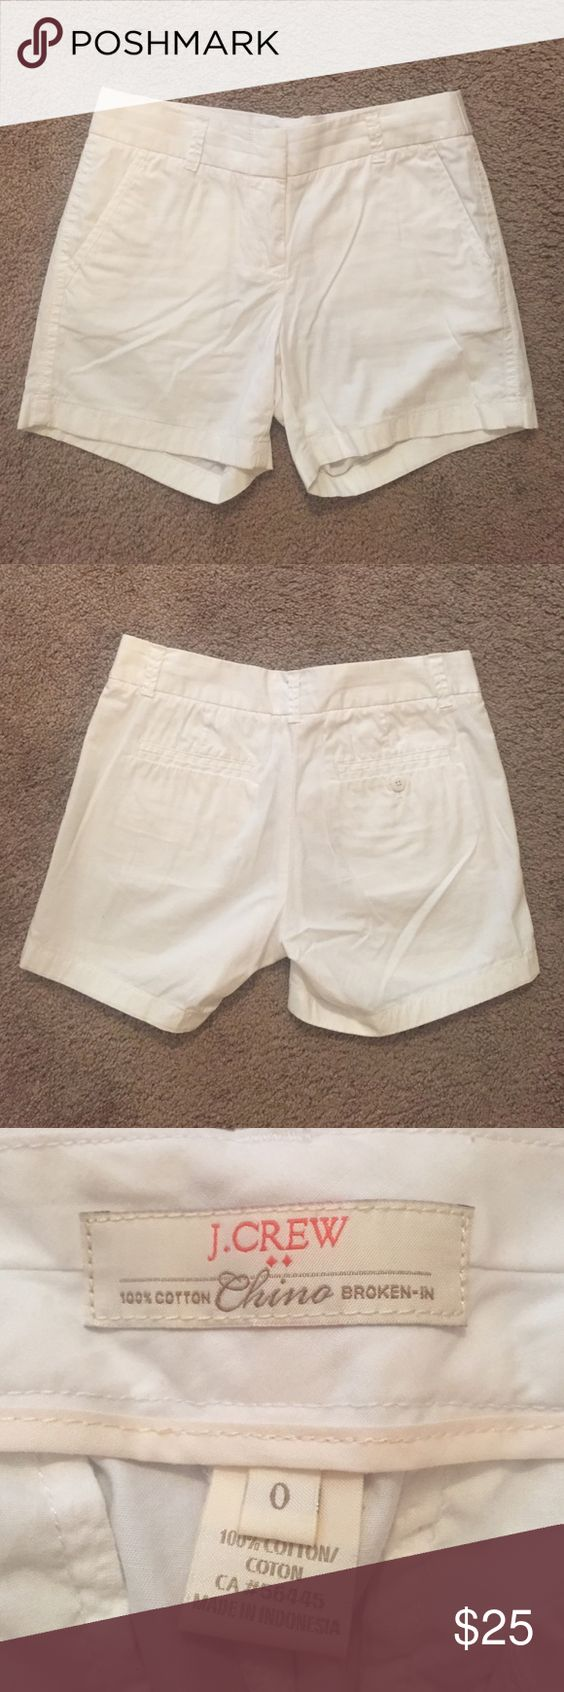 J. Crew white shorts These white j crew shorts are adorable! Good used condition-- they've only been worn 2-3 times. So comfortable and classy. Im pretty sure these are the 5'' chino shorts but they measure 12 and a quarter inches from the top of the waist to the bottom of the shorts. Let me know if you have any questions! J. Crew Shorts